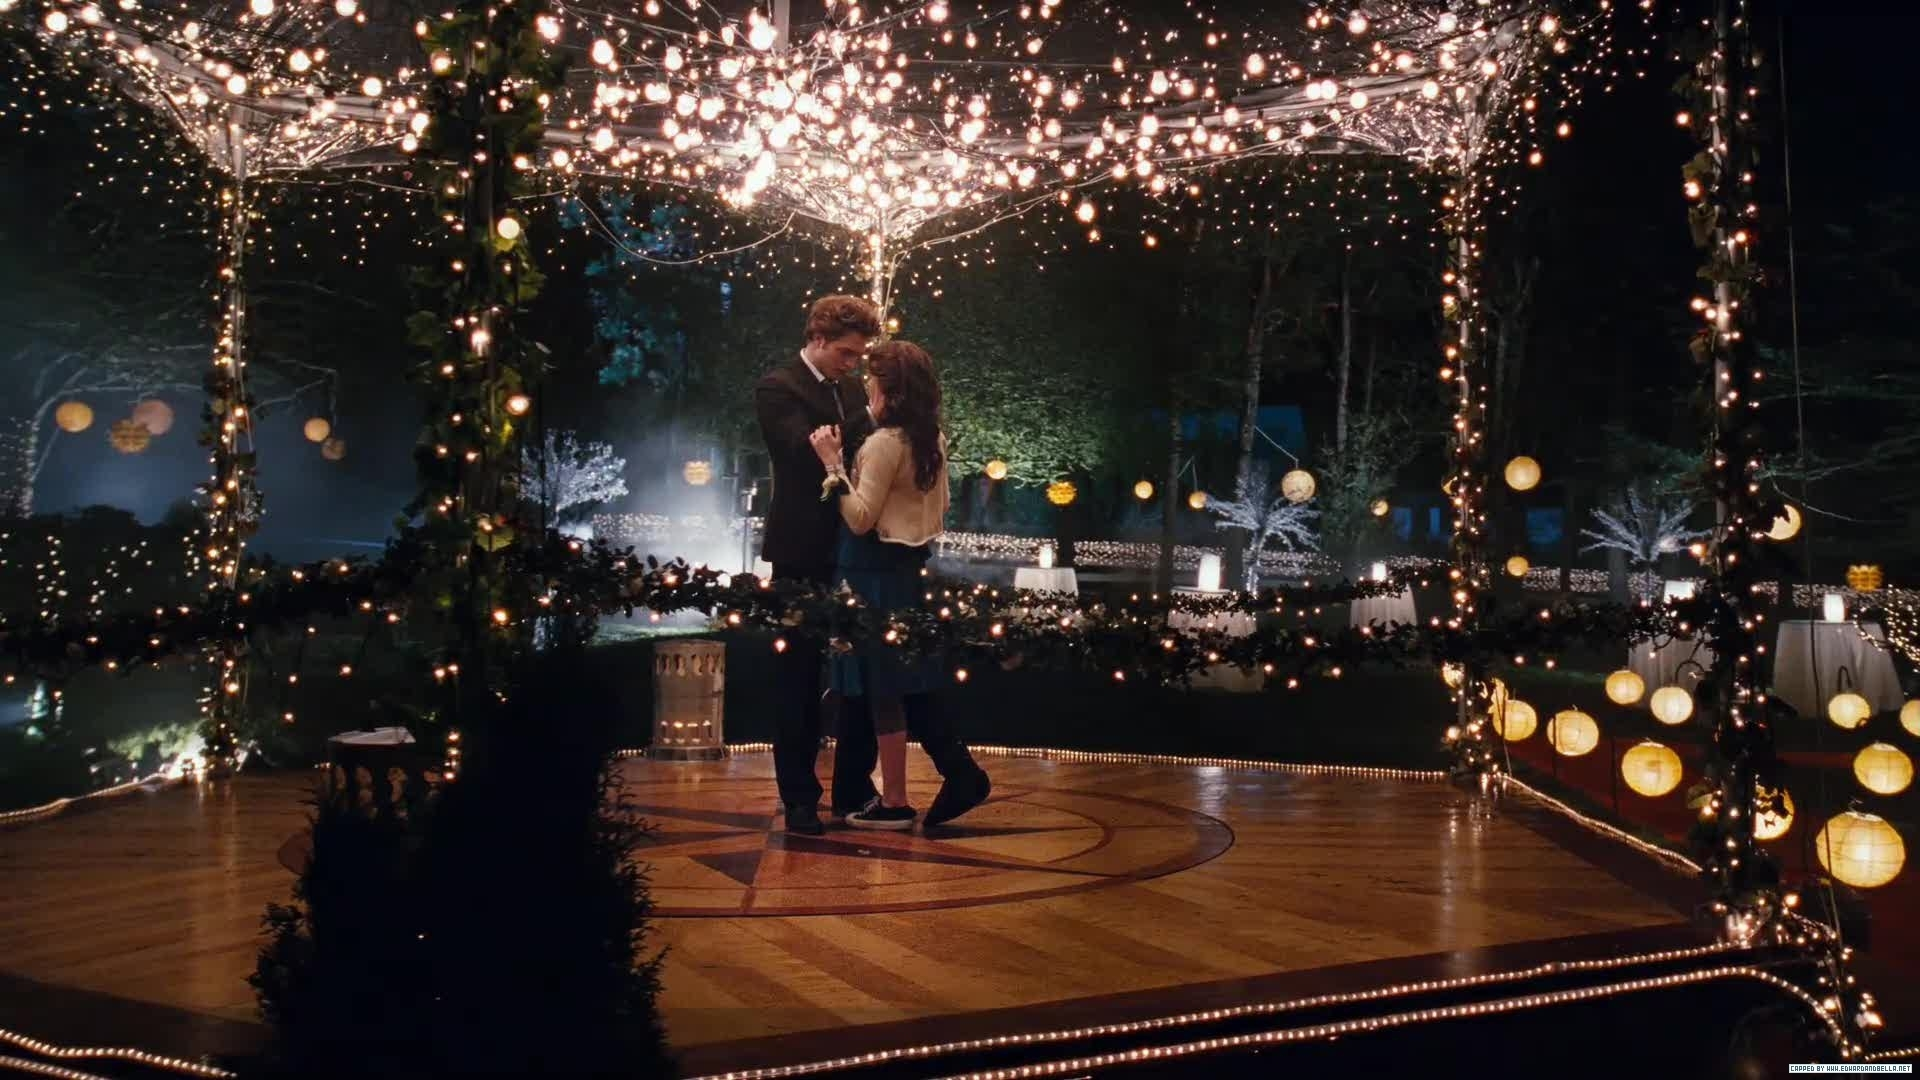 Outdoor String Lights For Gazebo : The prom HD - Twilight Series Photo (2561852) - Fanpop